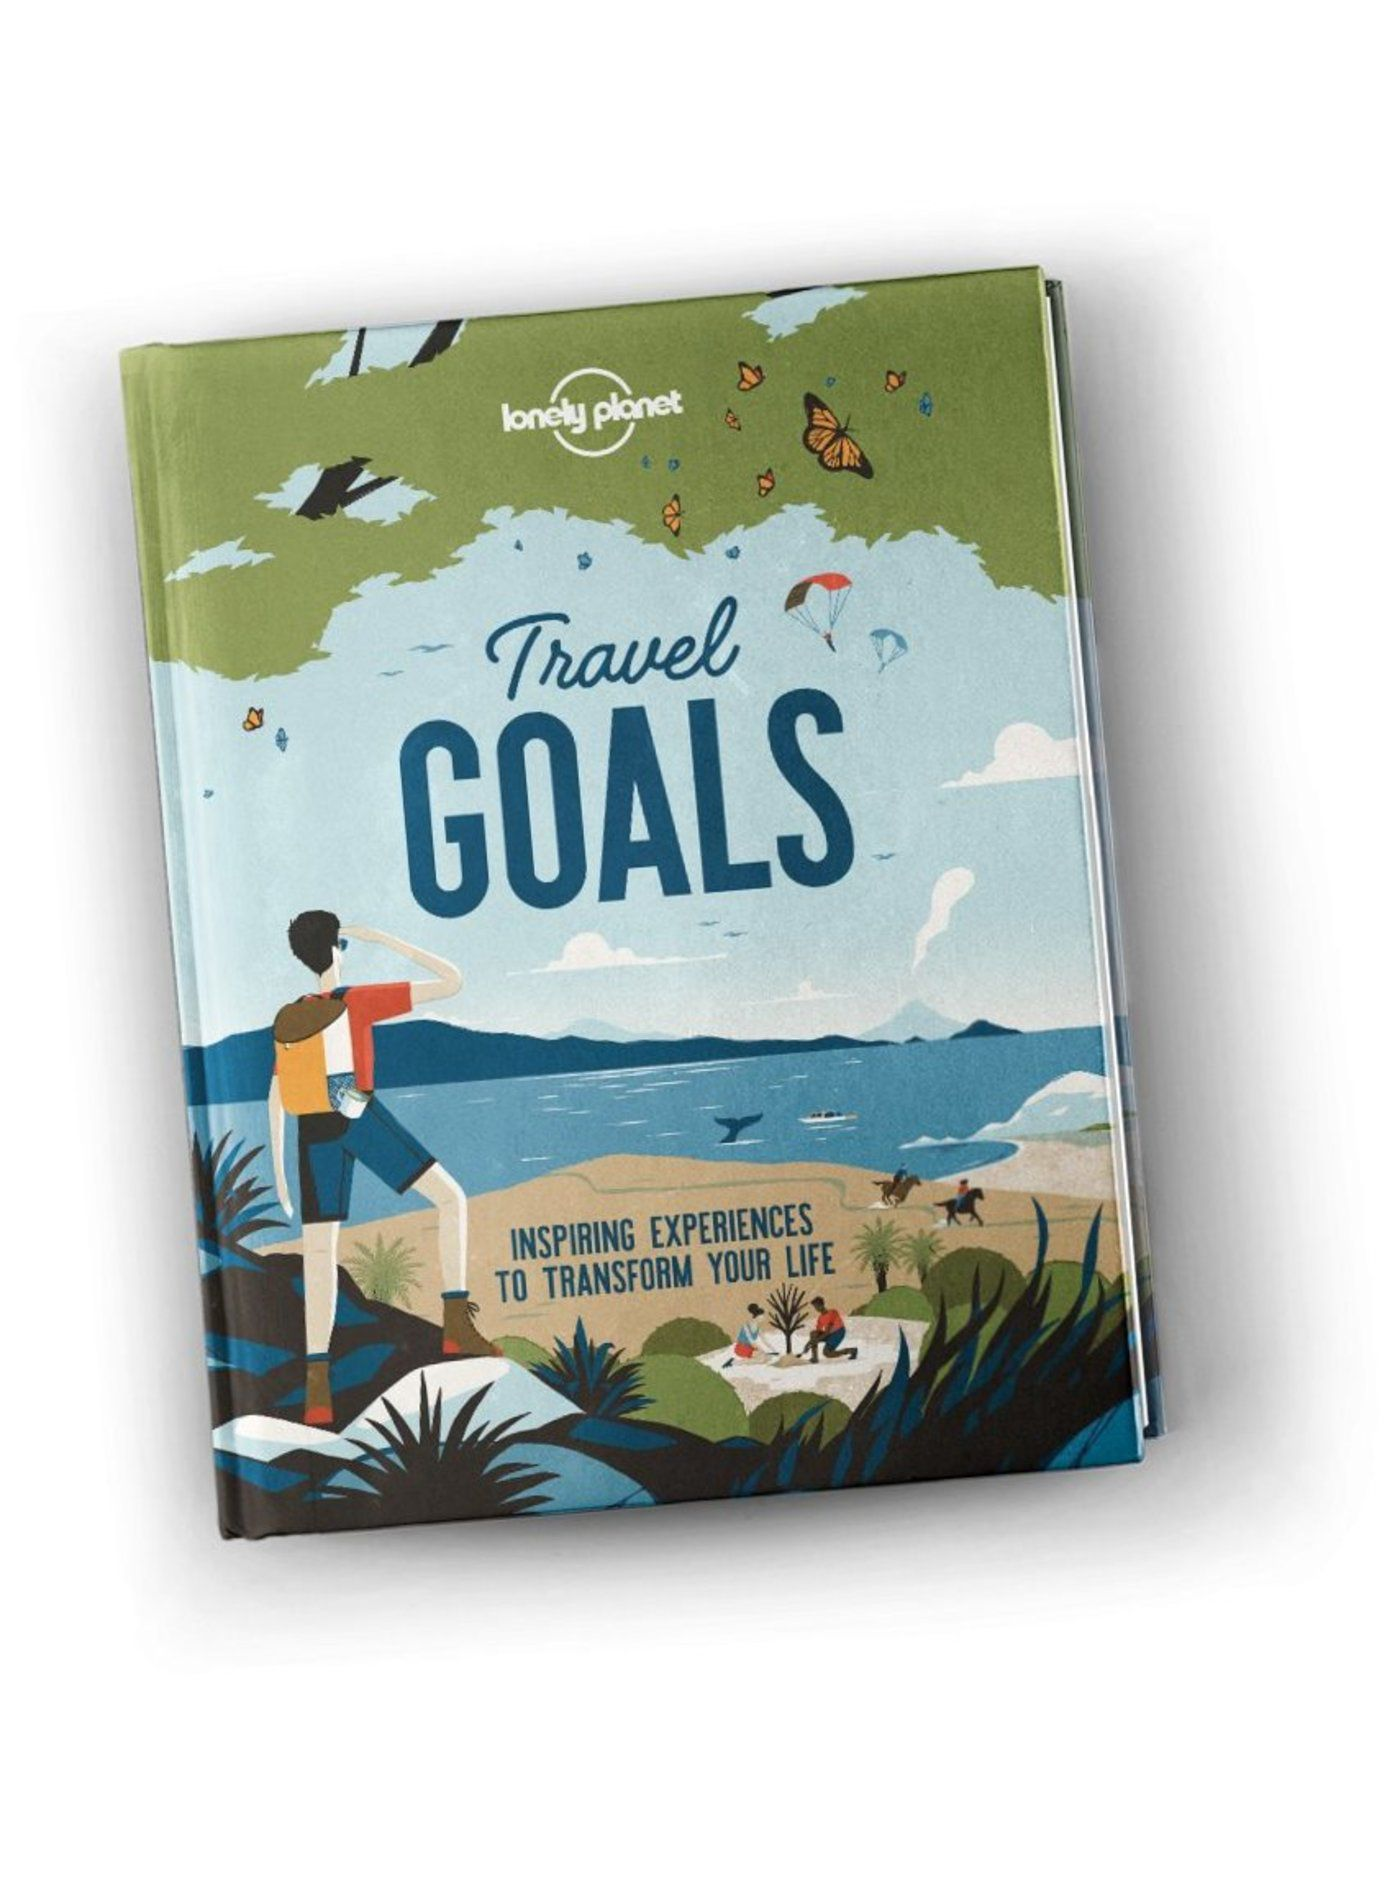 Travel Goals: Inspiring Experiences to Transform Your Life (North & South America edition)